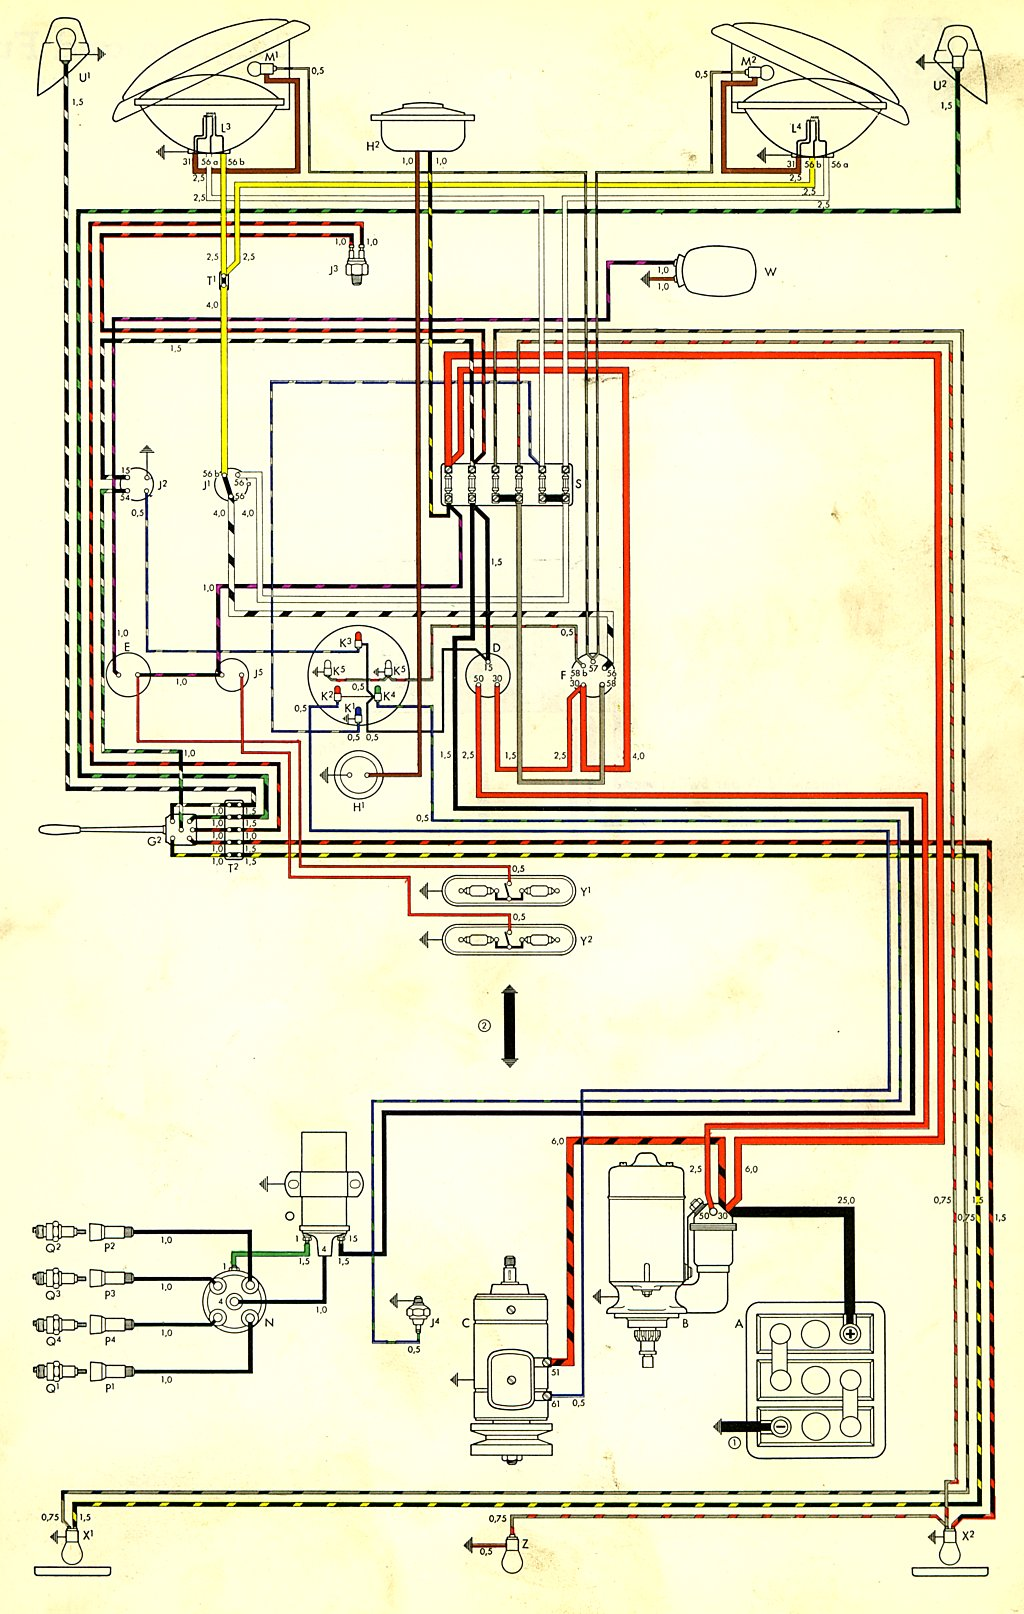 bus_59_USA thesamba com type 2 wiring diagrams vw ignition wiring diagram at soozxer.org